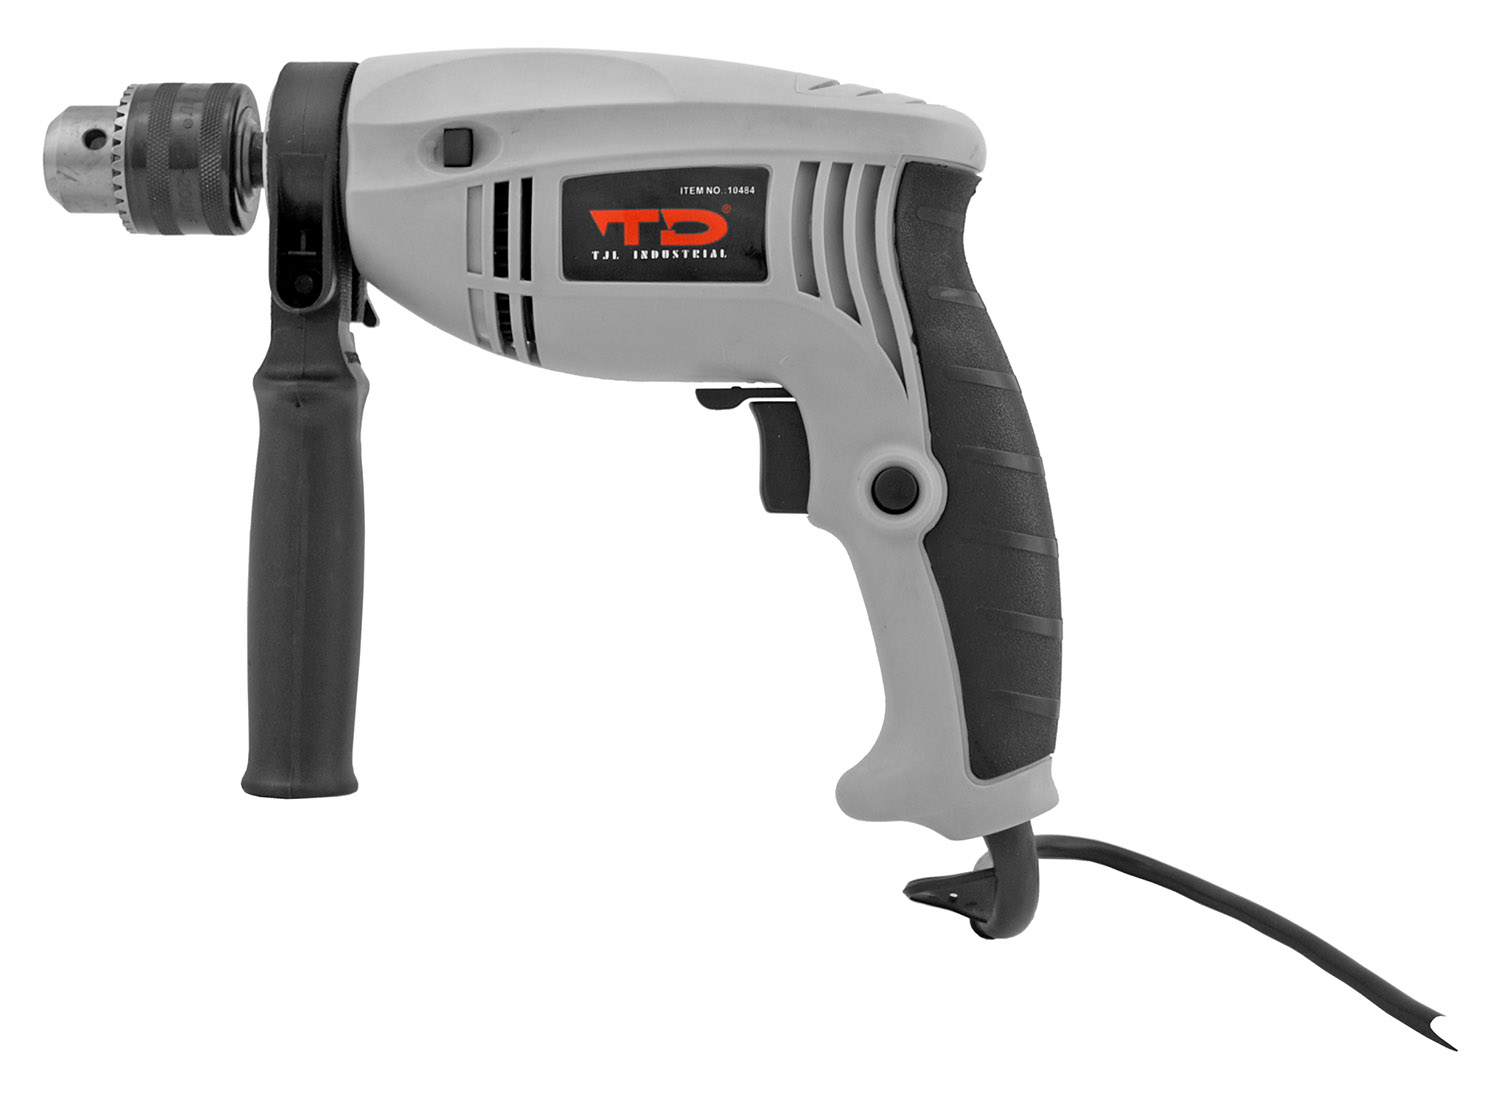 1/2 in Corded Impact Drill - TJL Industrial